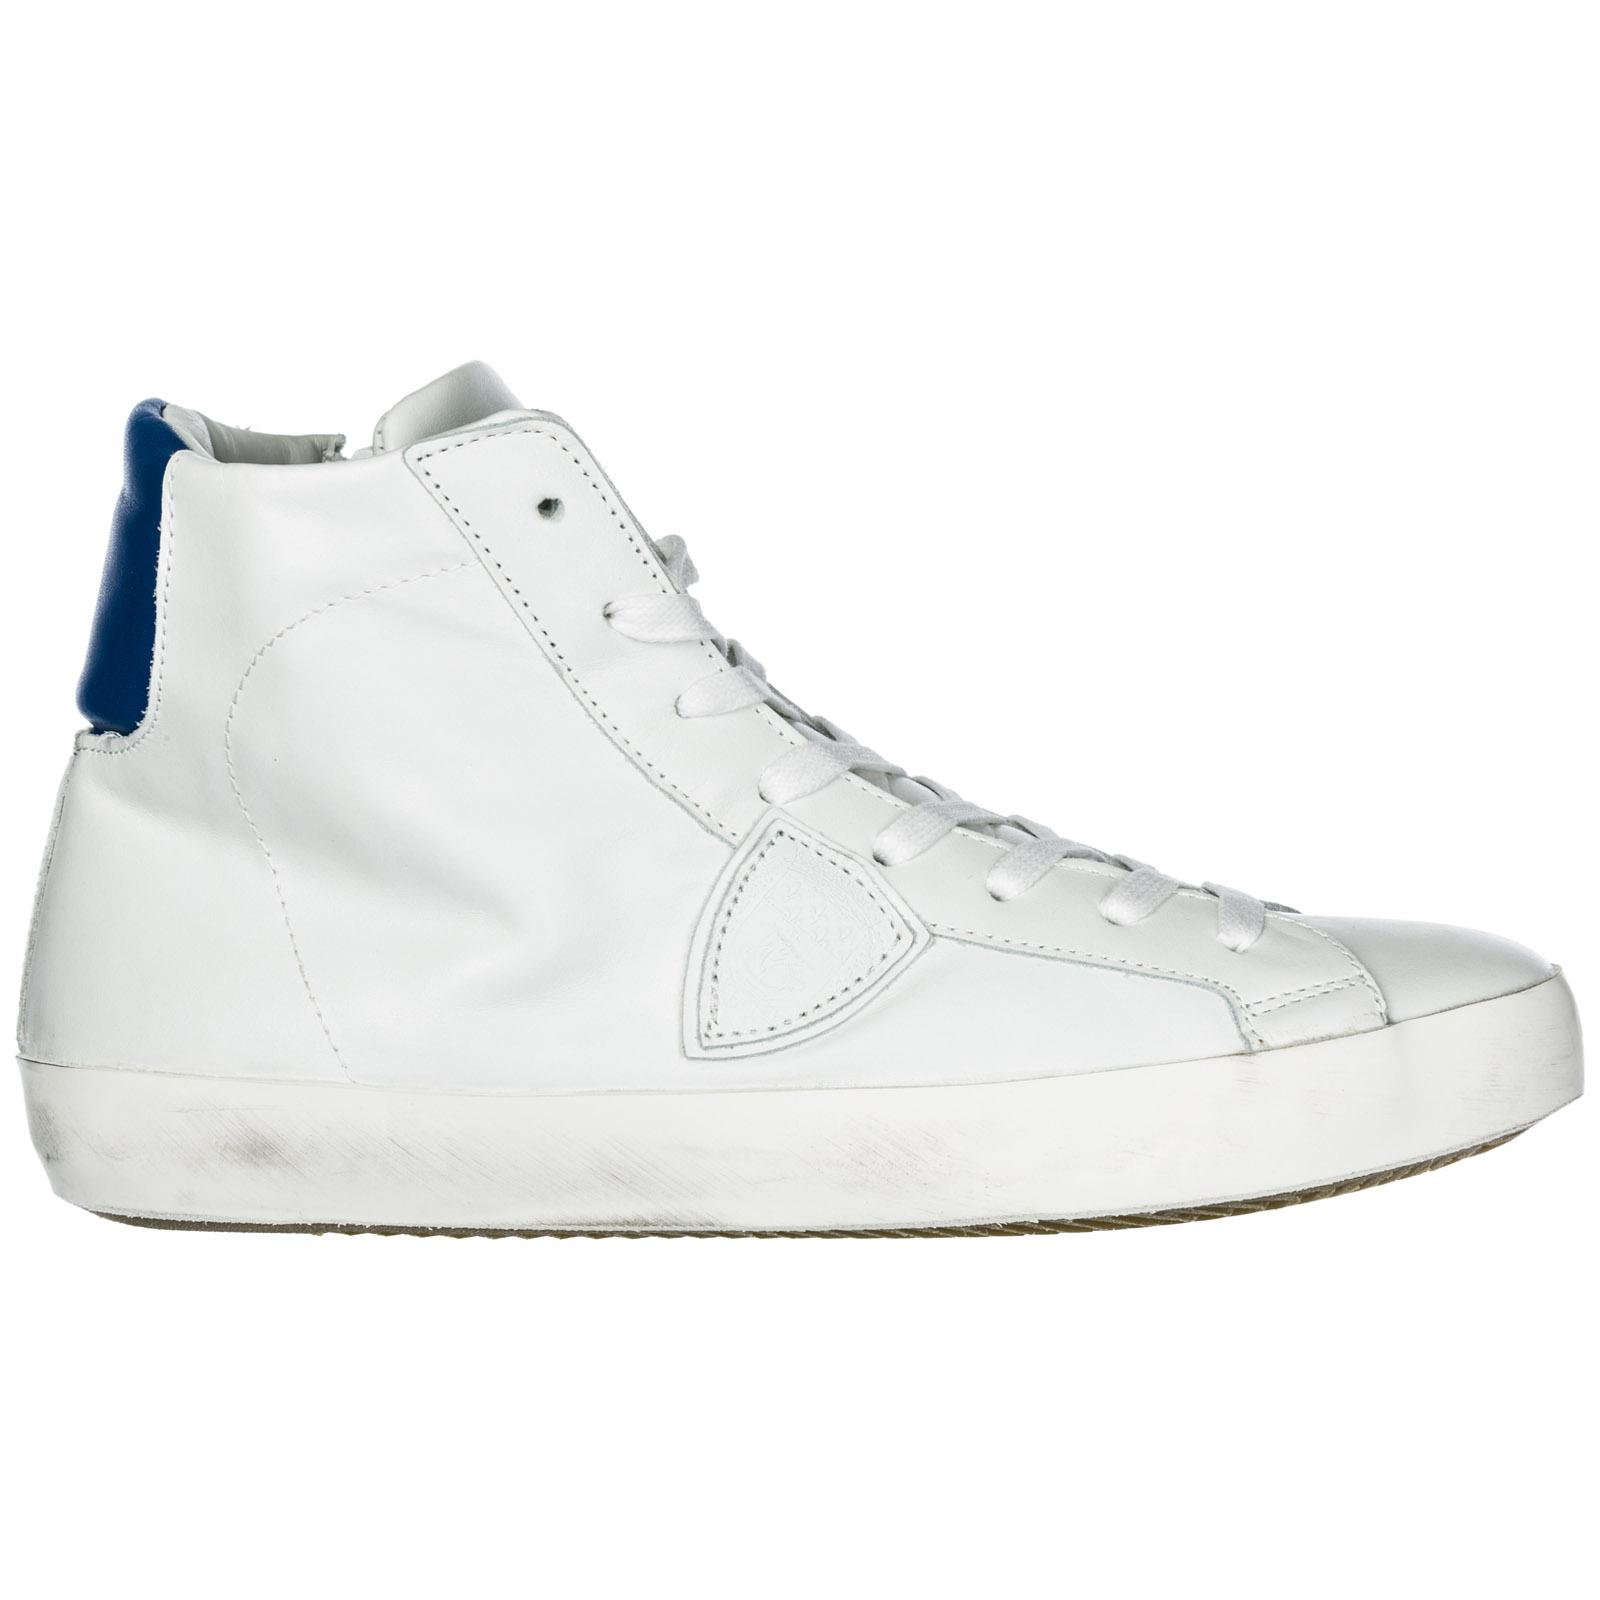 744abbf486d Lyst - Philippe Model Shoes High Top Leather Trainers Sneakers Paris ...